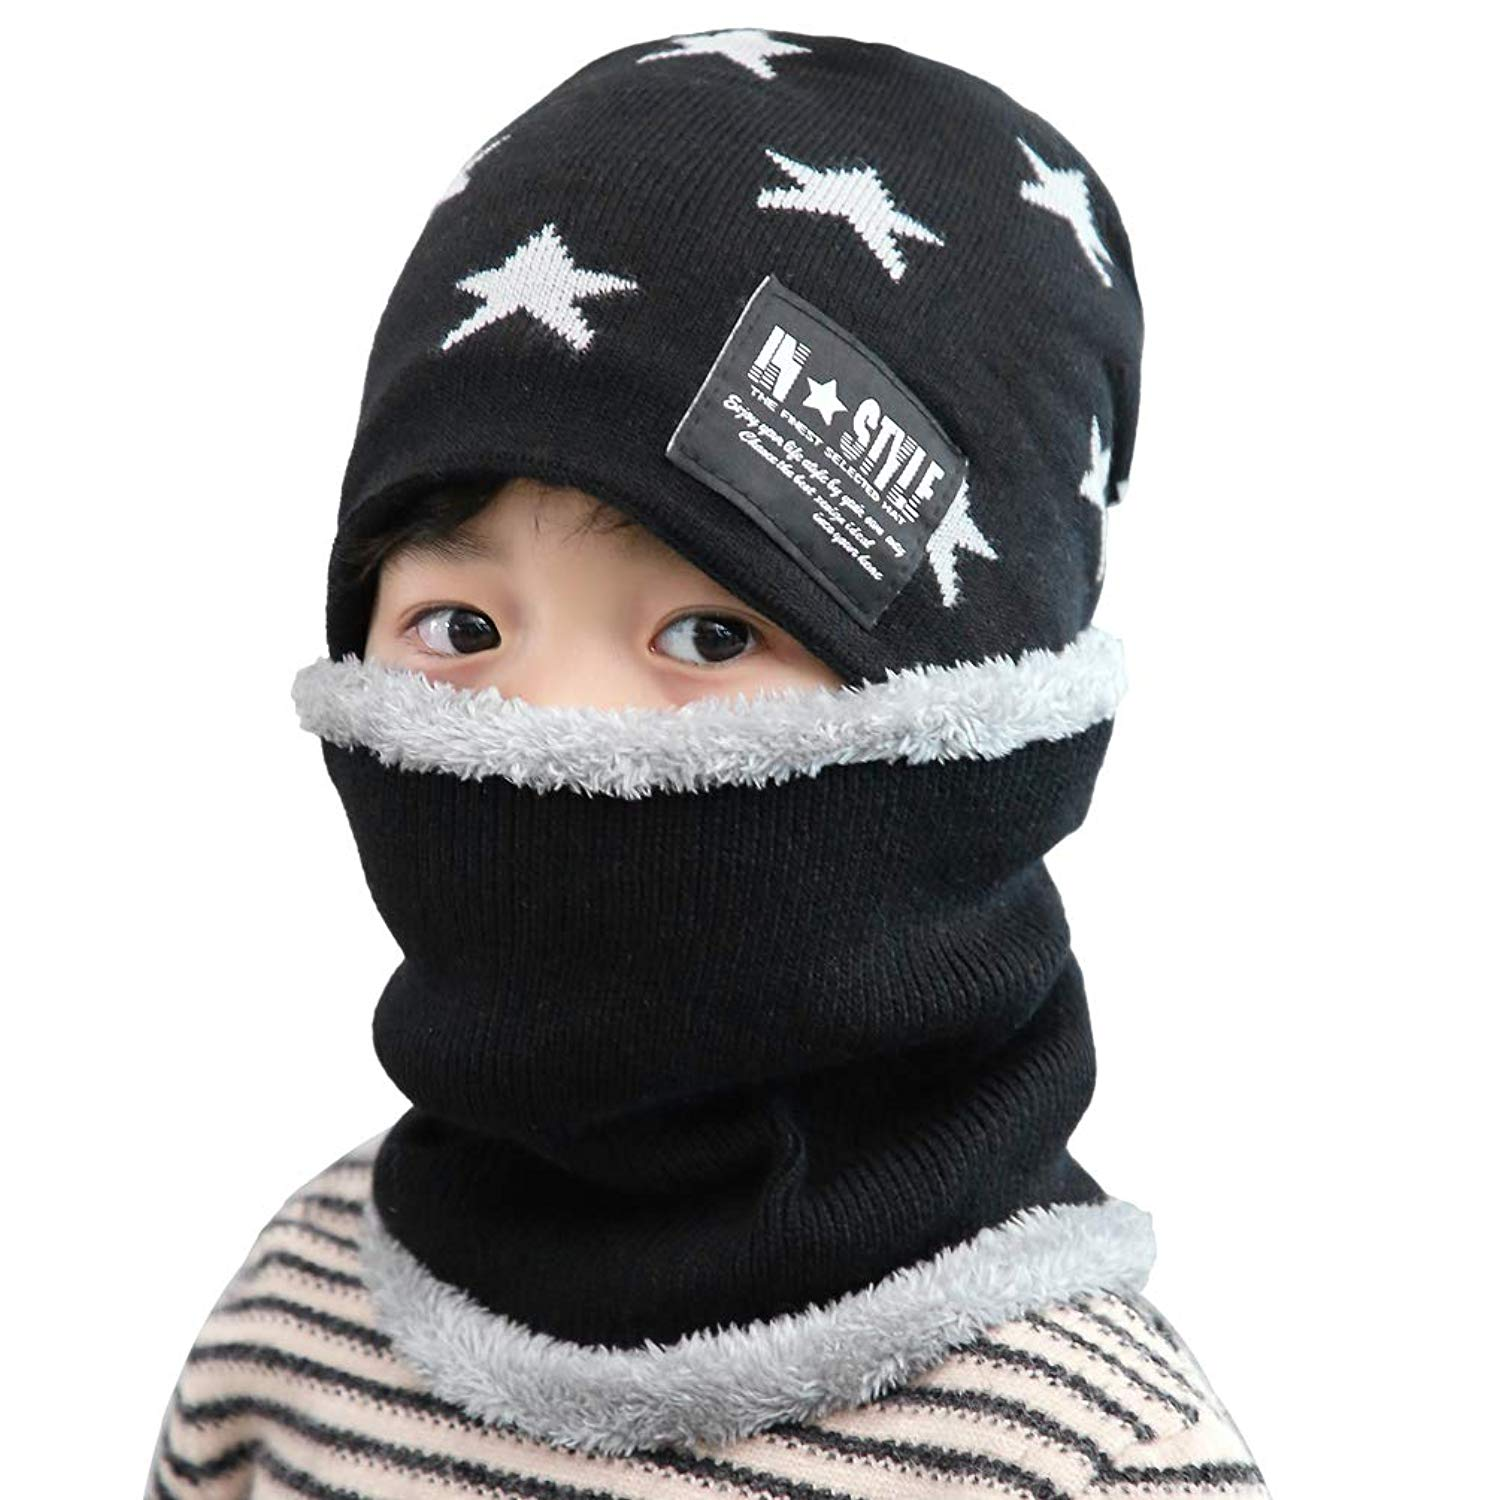 a8a69edd8a4 Get Quotations · VBG VBIGER 2 Pieces Kids Winter Knit Hat and Scarf Warm  Thick Beanie Cap and Scarf